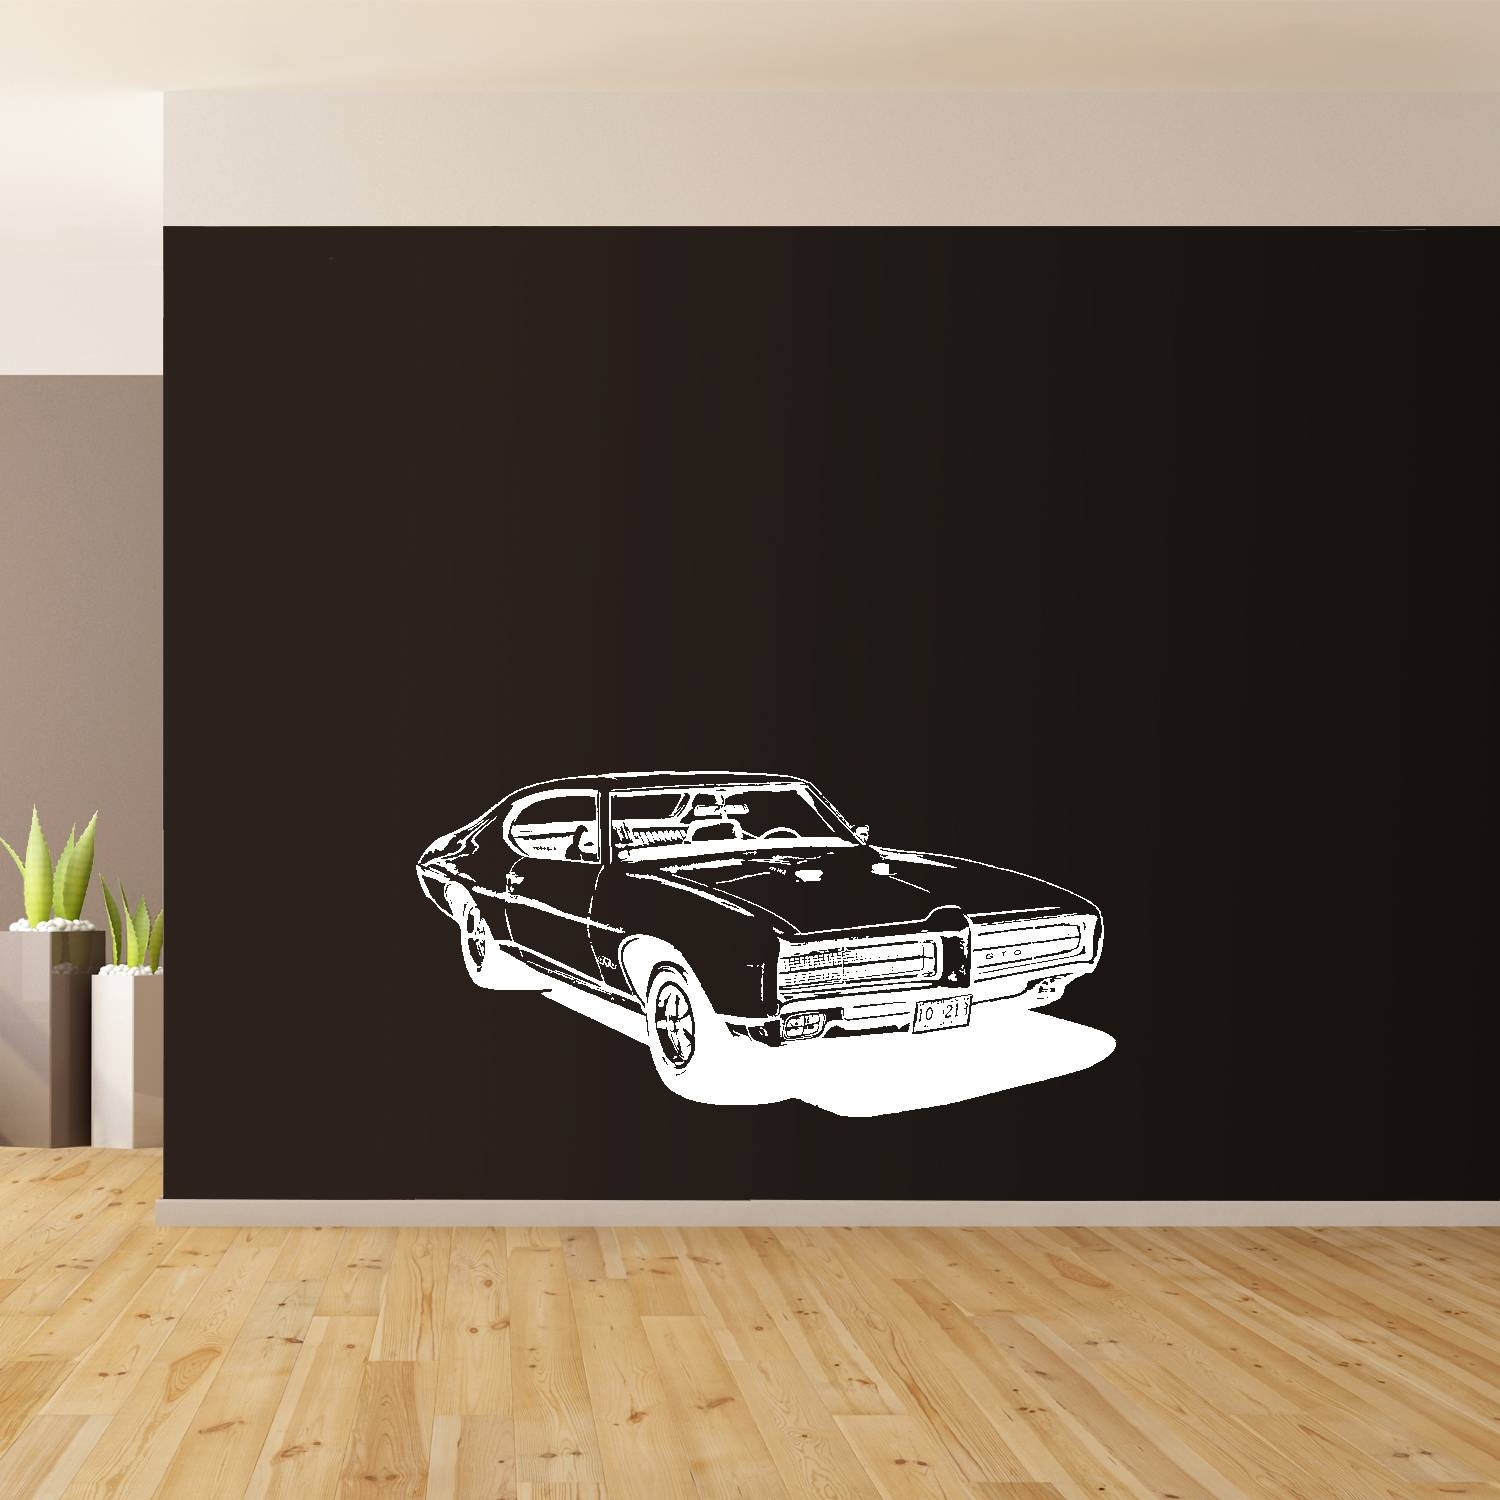 1969 Pontiac, Classic American Muscle Car Wall Art, Giant Sticker Pertaining To Most Recently Released Classic Car Wall Art (View 3 of 25)